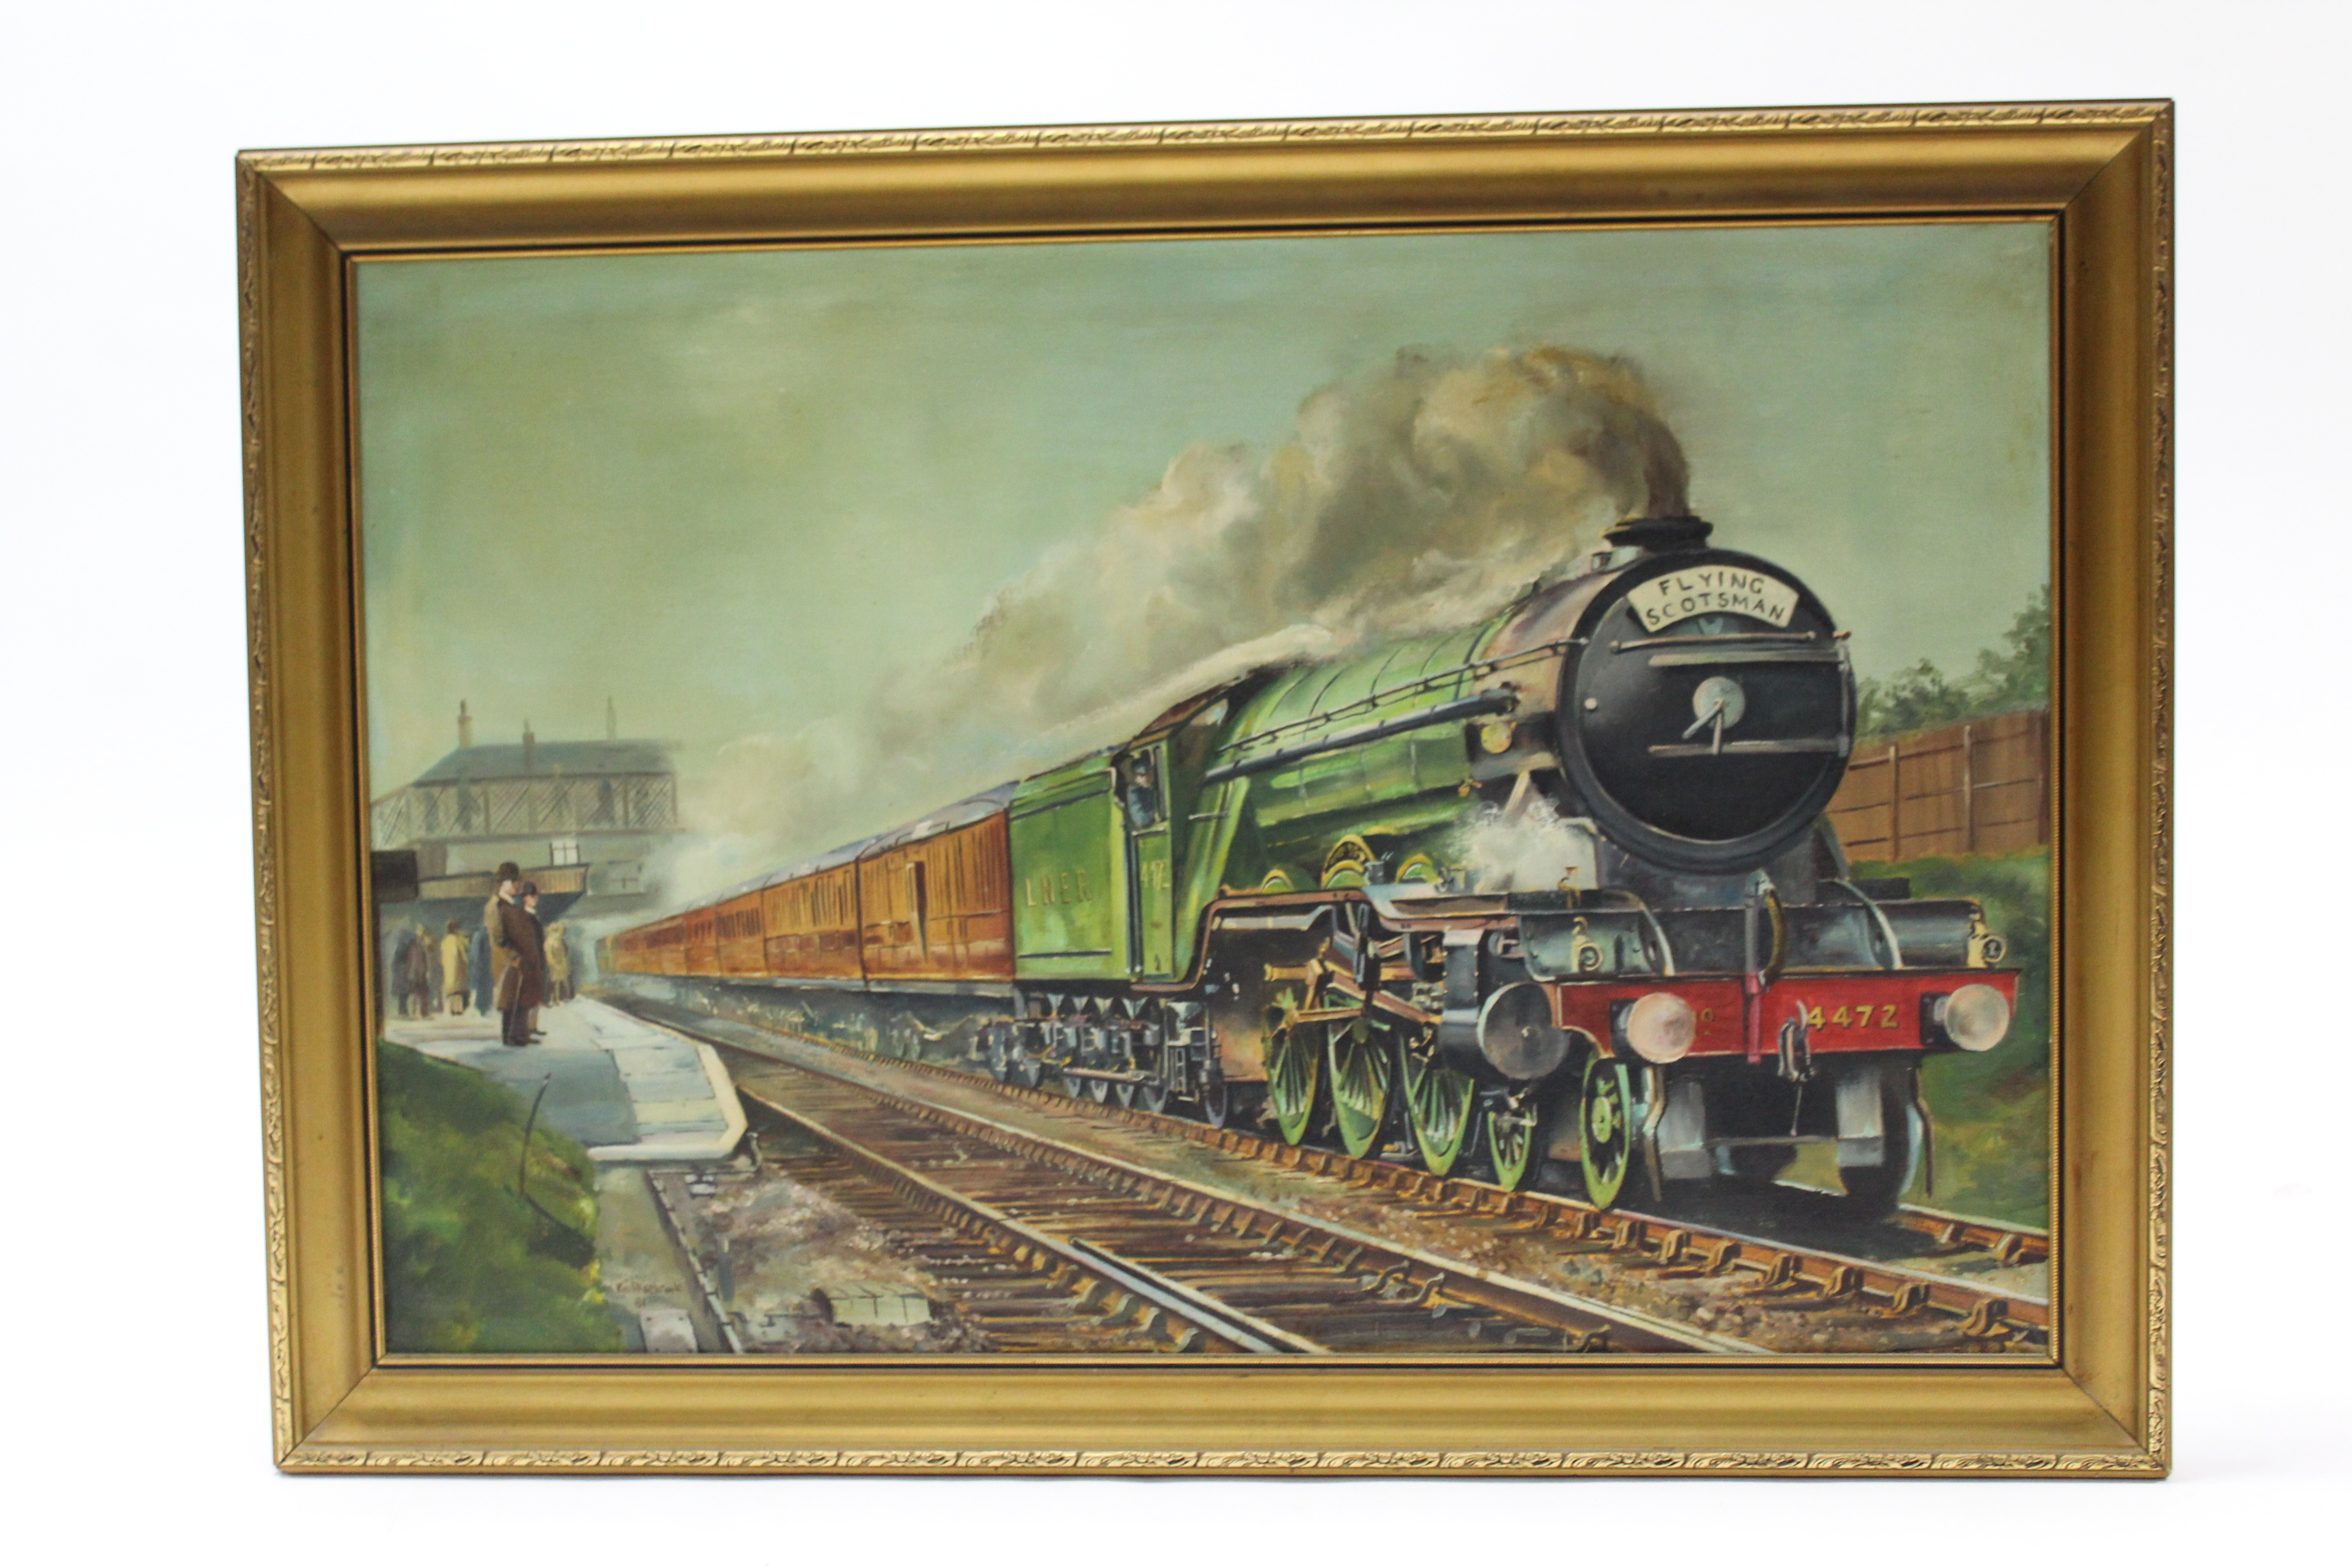 Lot 88 - Another large oil painting on canvas by Ken Allsebrook, of a railway locomotive titled to